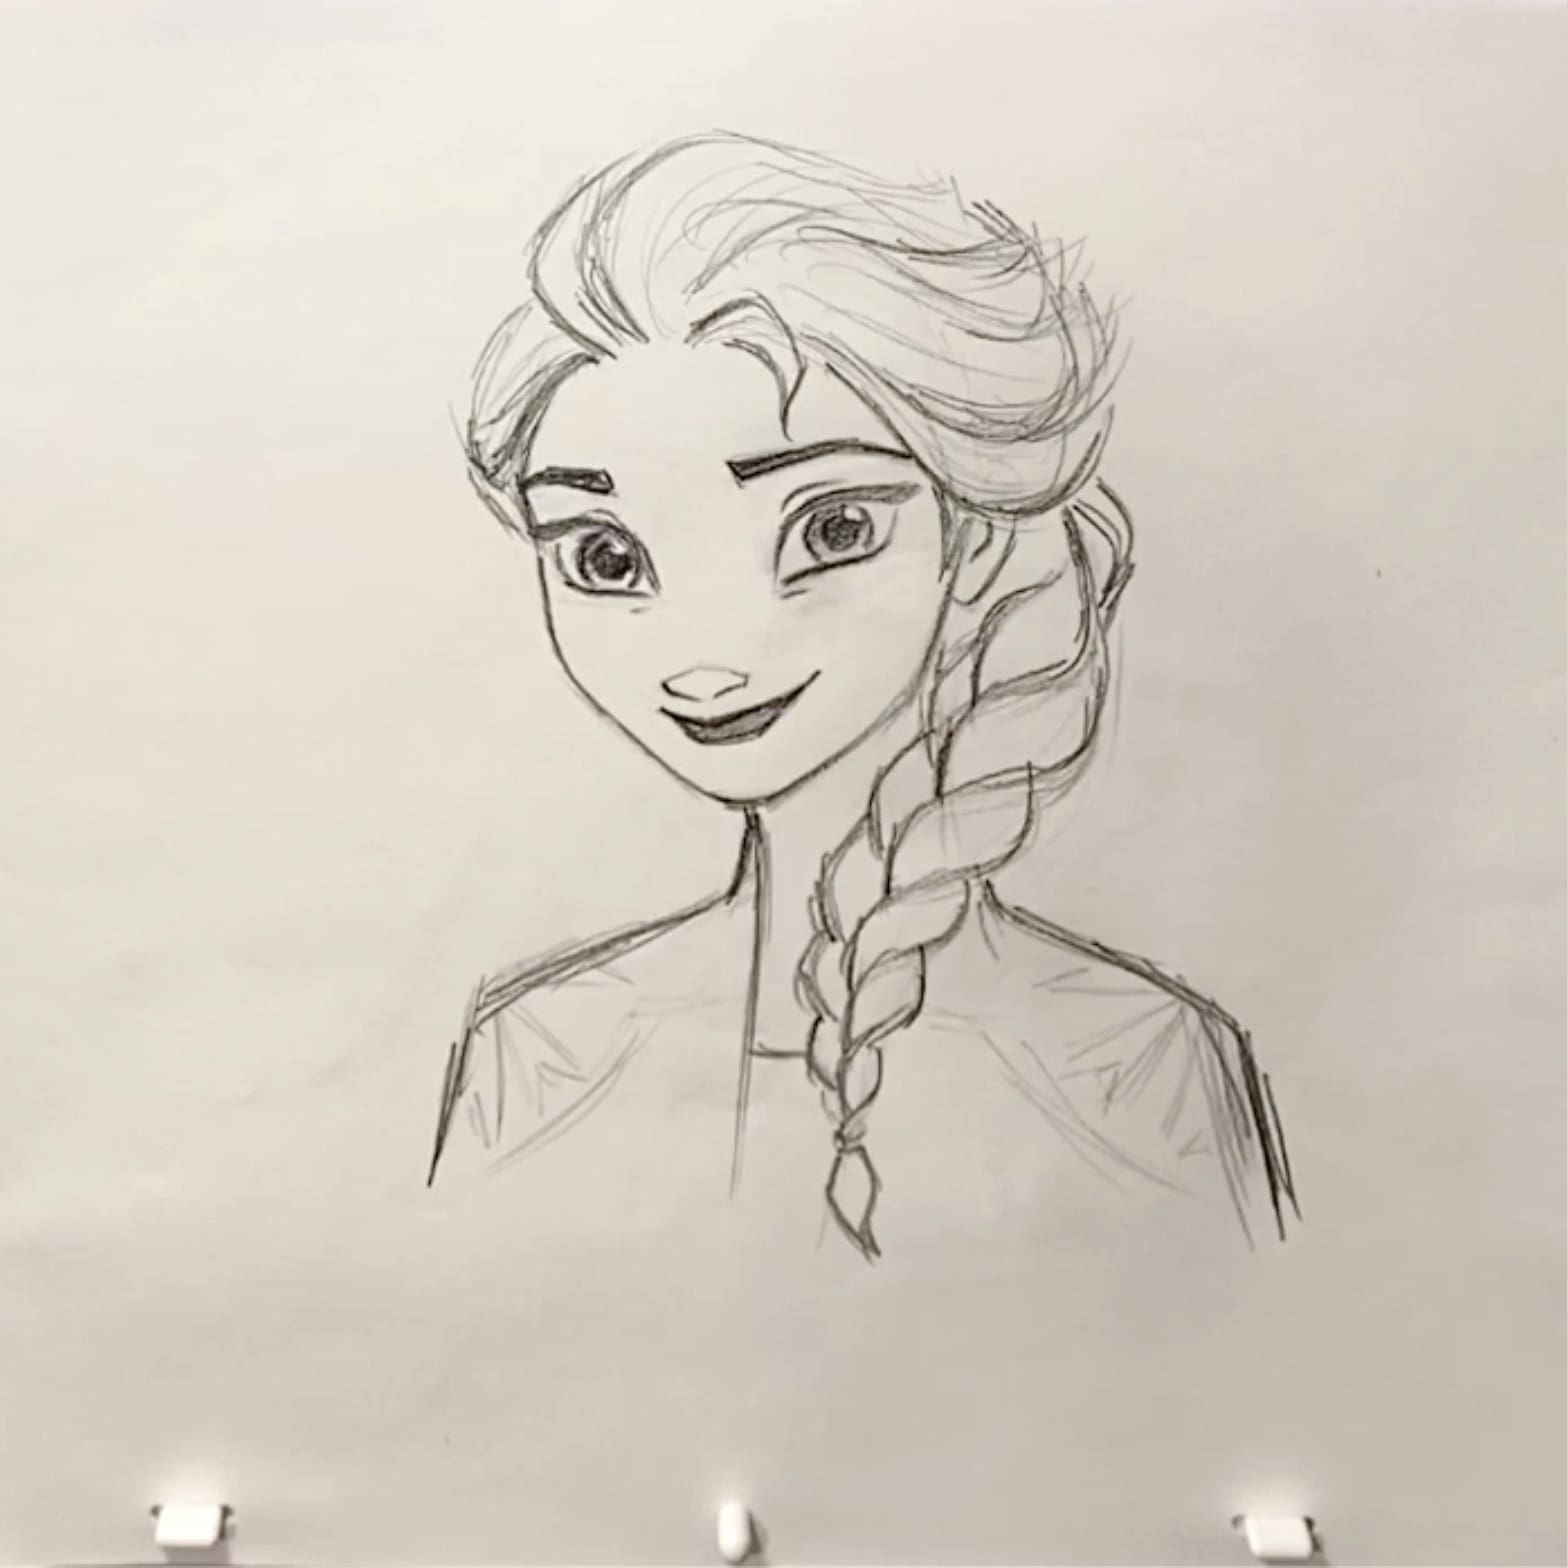 Coolest Drawing Lesson Ever: How to Draw Elsa From Frozen 2